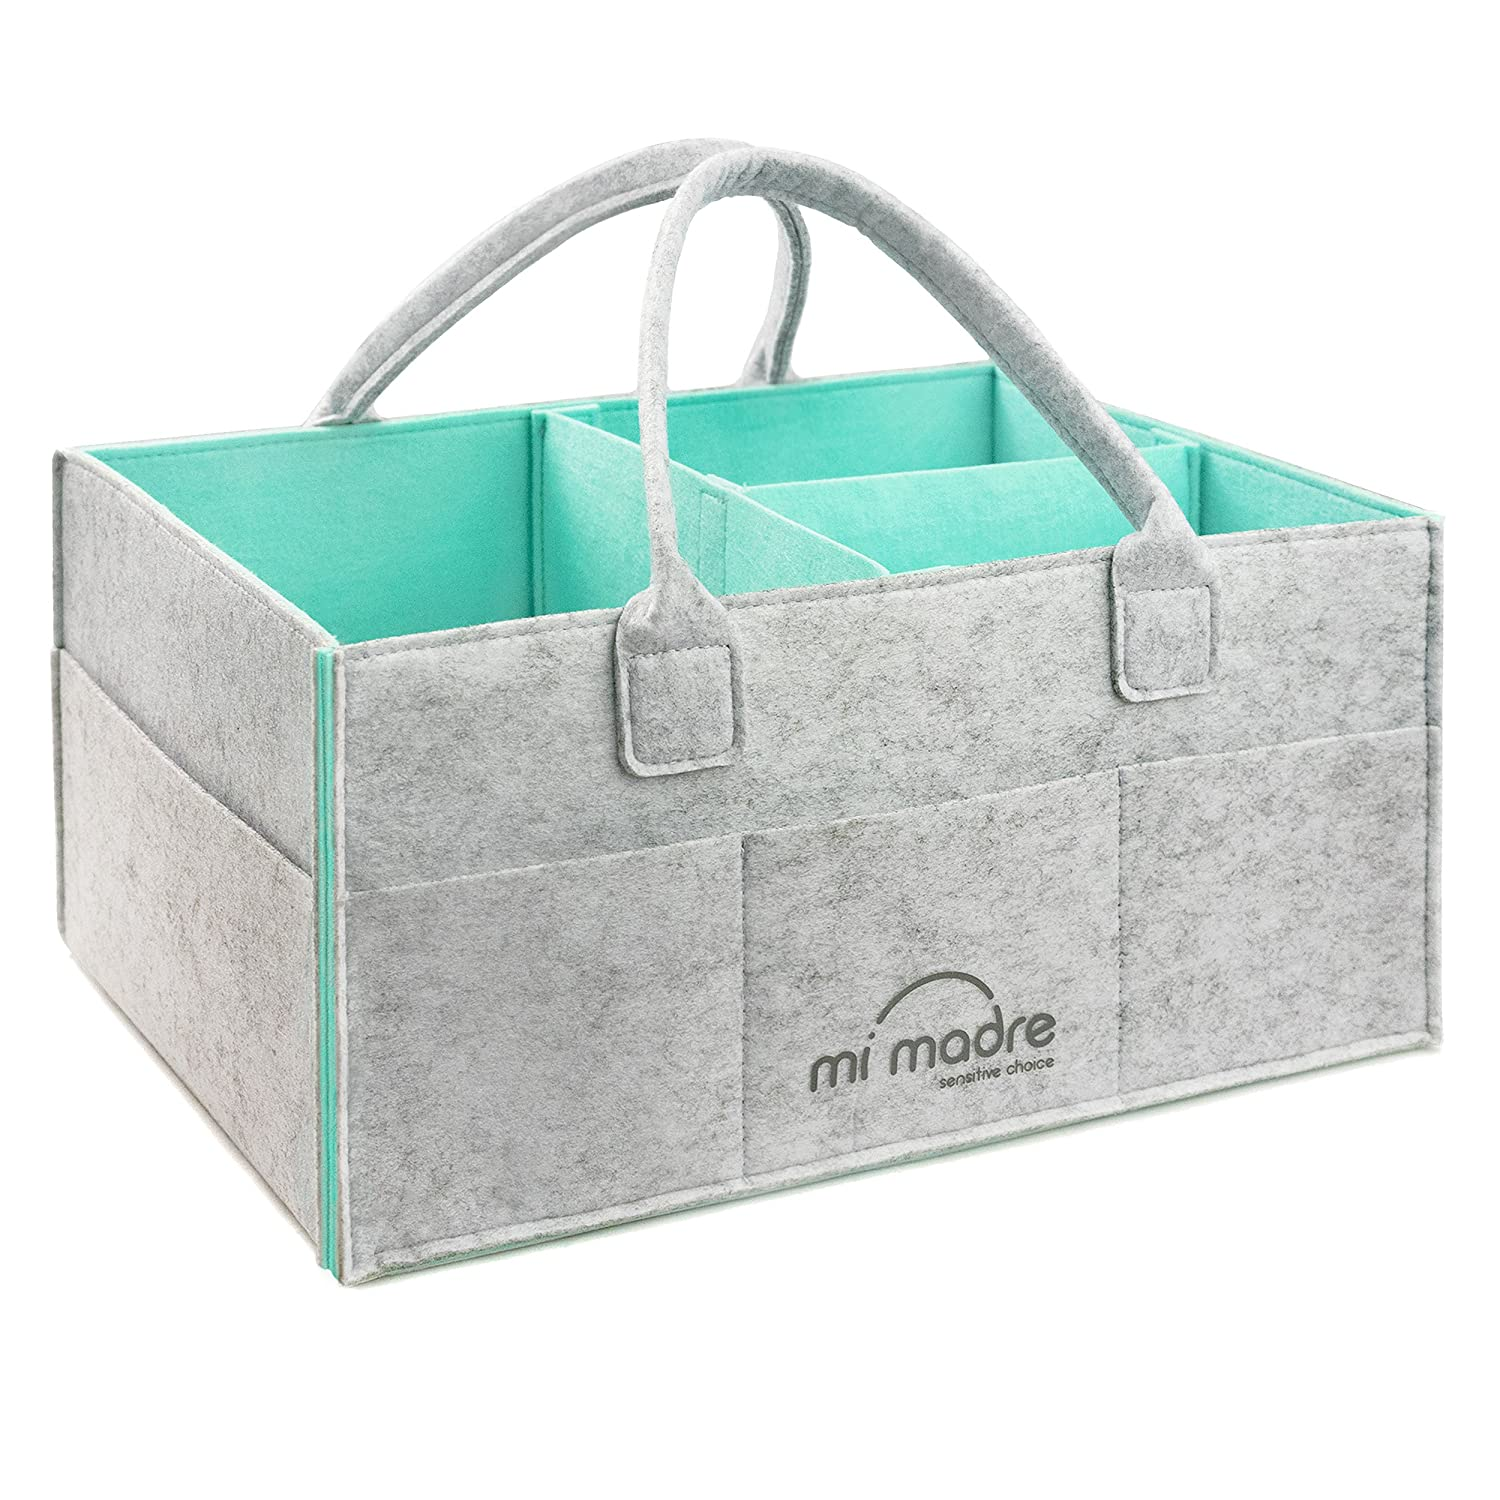 Baby Diaper Caddy Organizer | Newborn Registry Must Have | Changing Table Tote Bag - Baby Shower Gift Basket for Moms | Nursery Storage Bin | Large Portable Car Travel Organizer MIMADRE-MN-01-001